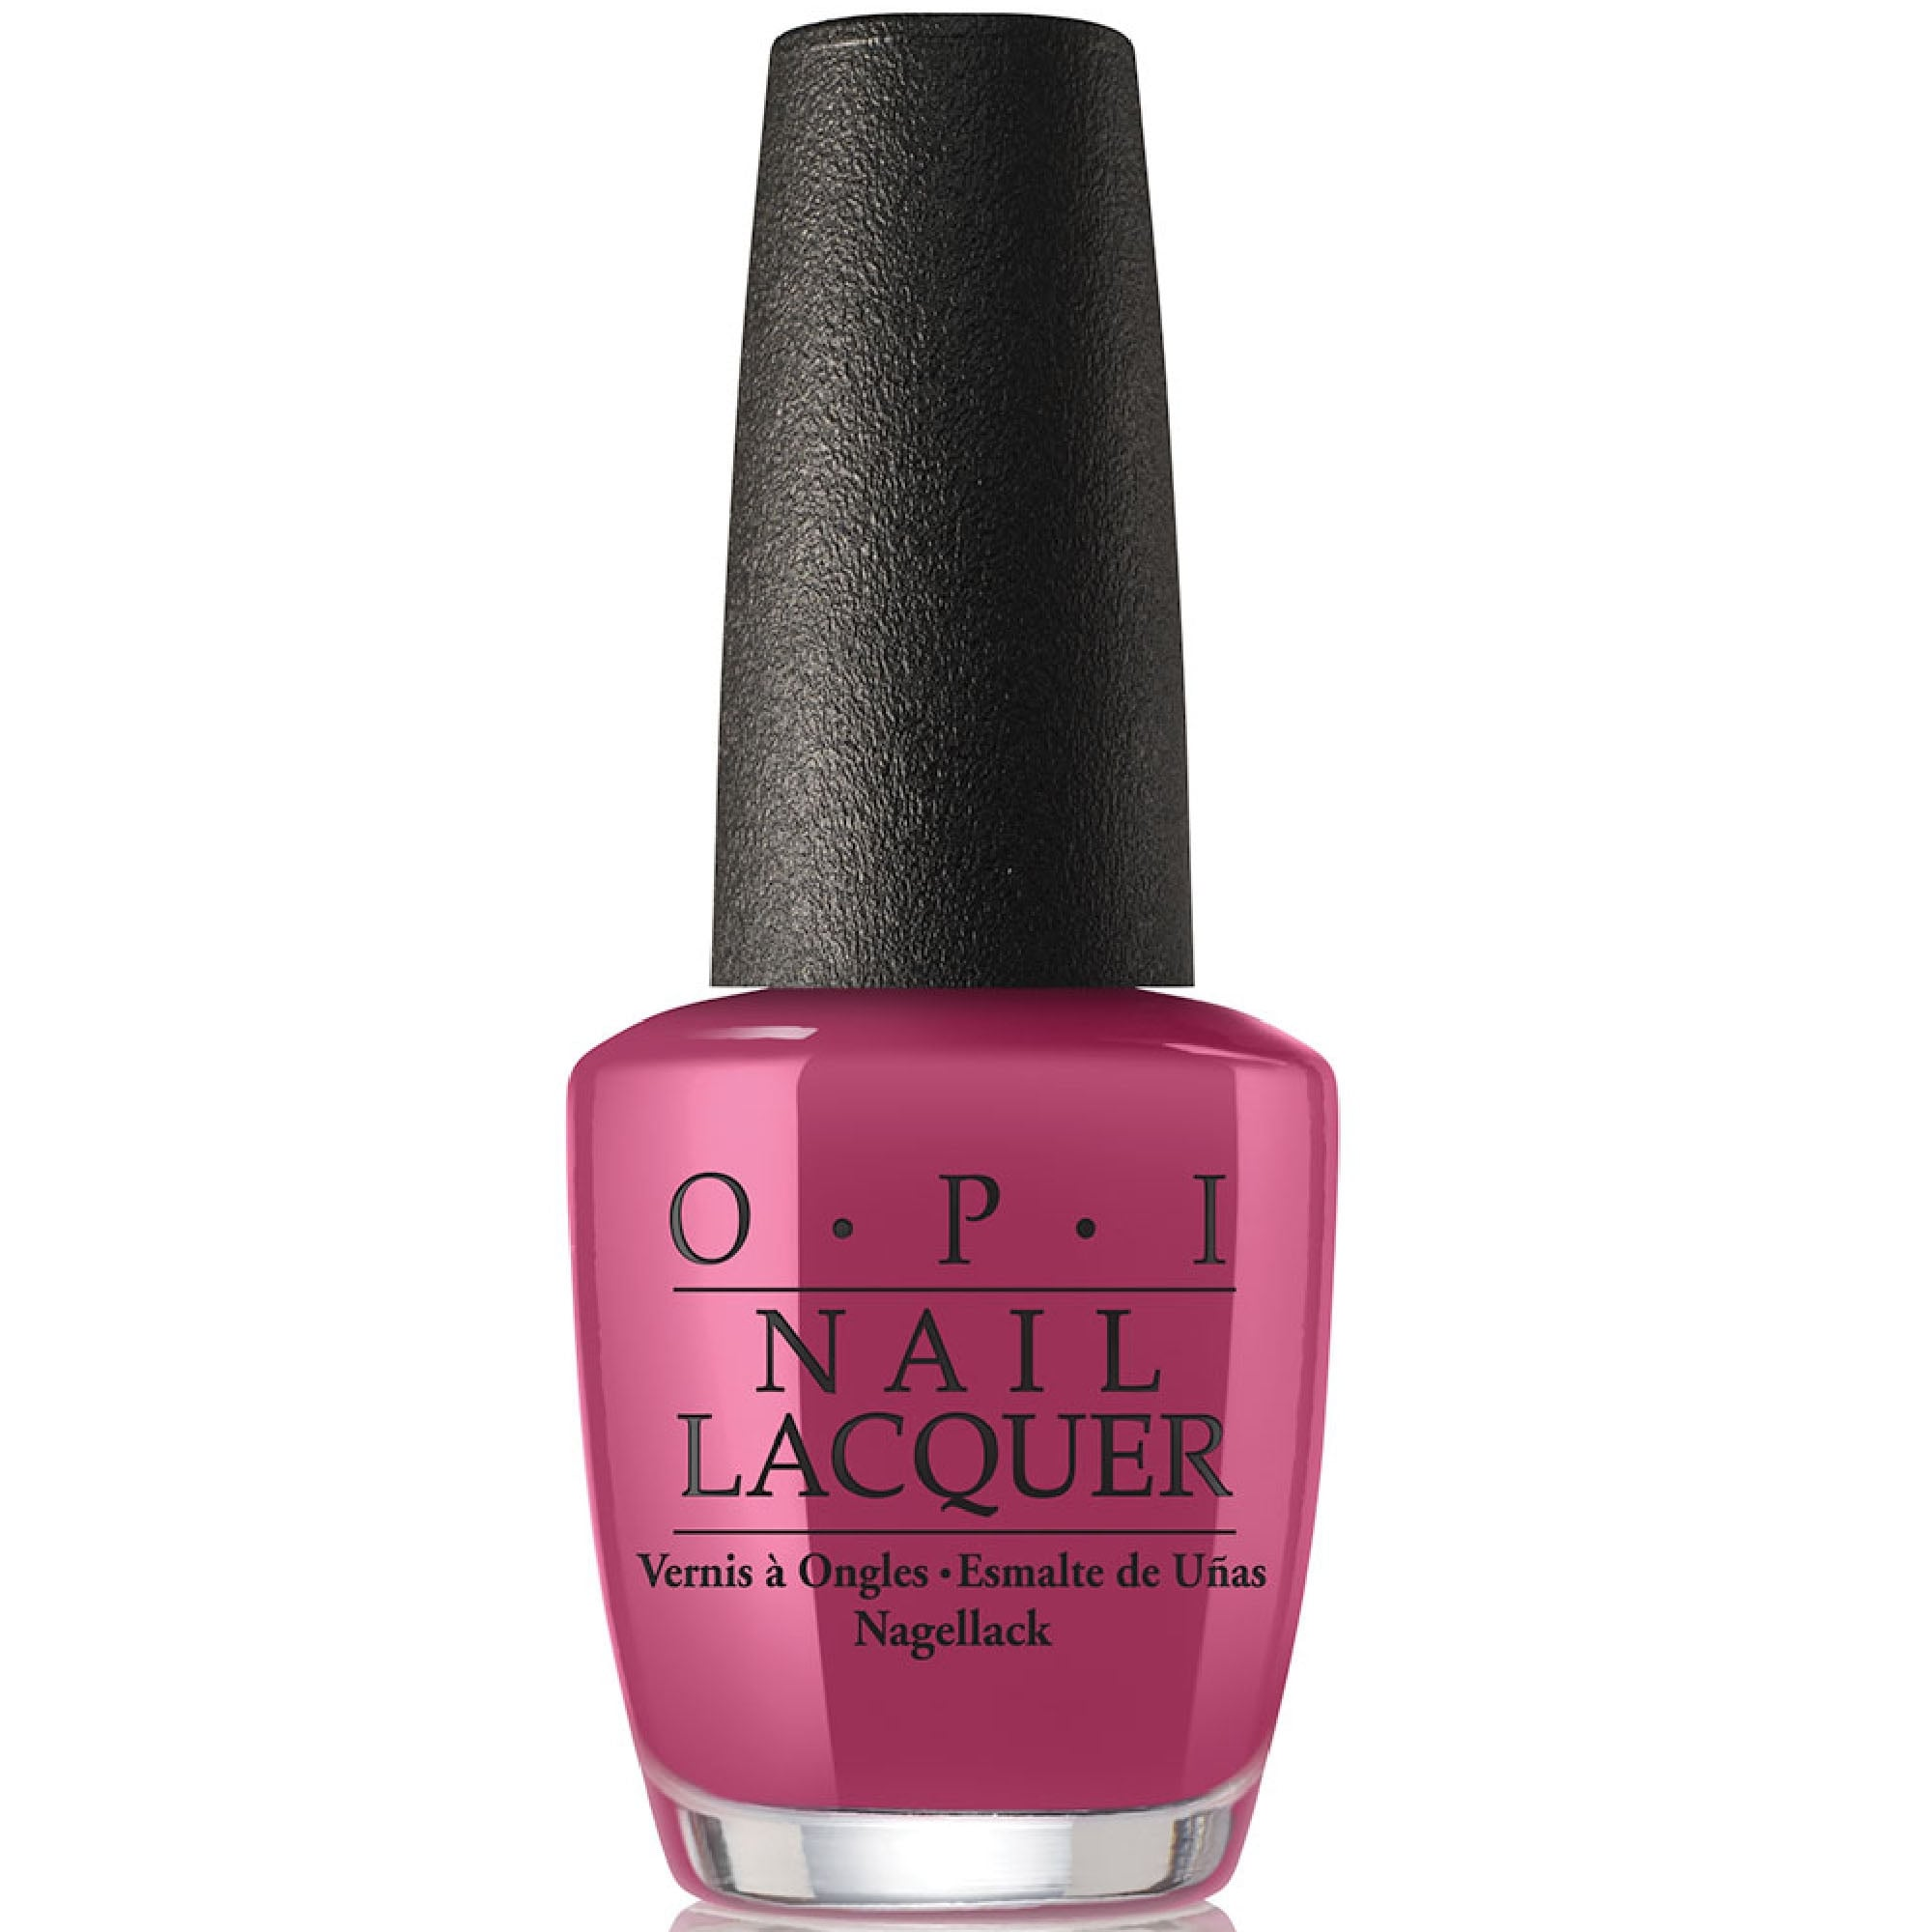 Aurora Berry-alis-OPI Nail Lacquer-UK-Wholesaler-Supplier-queenofnailscouk